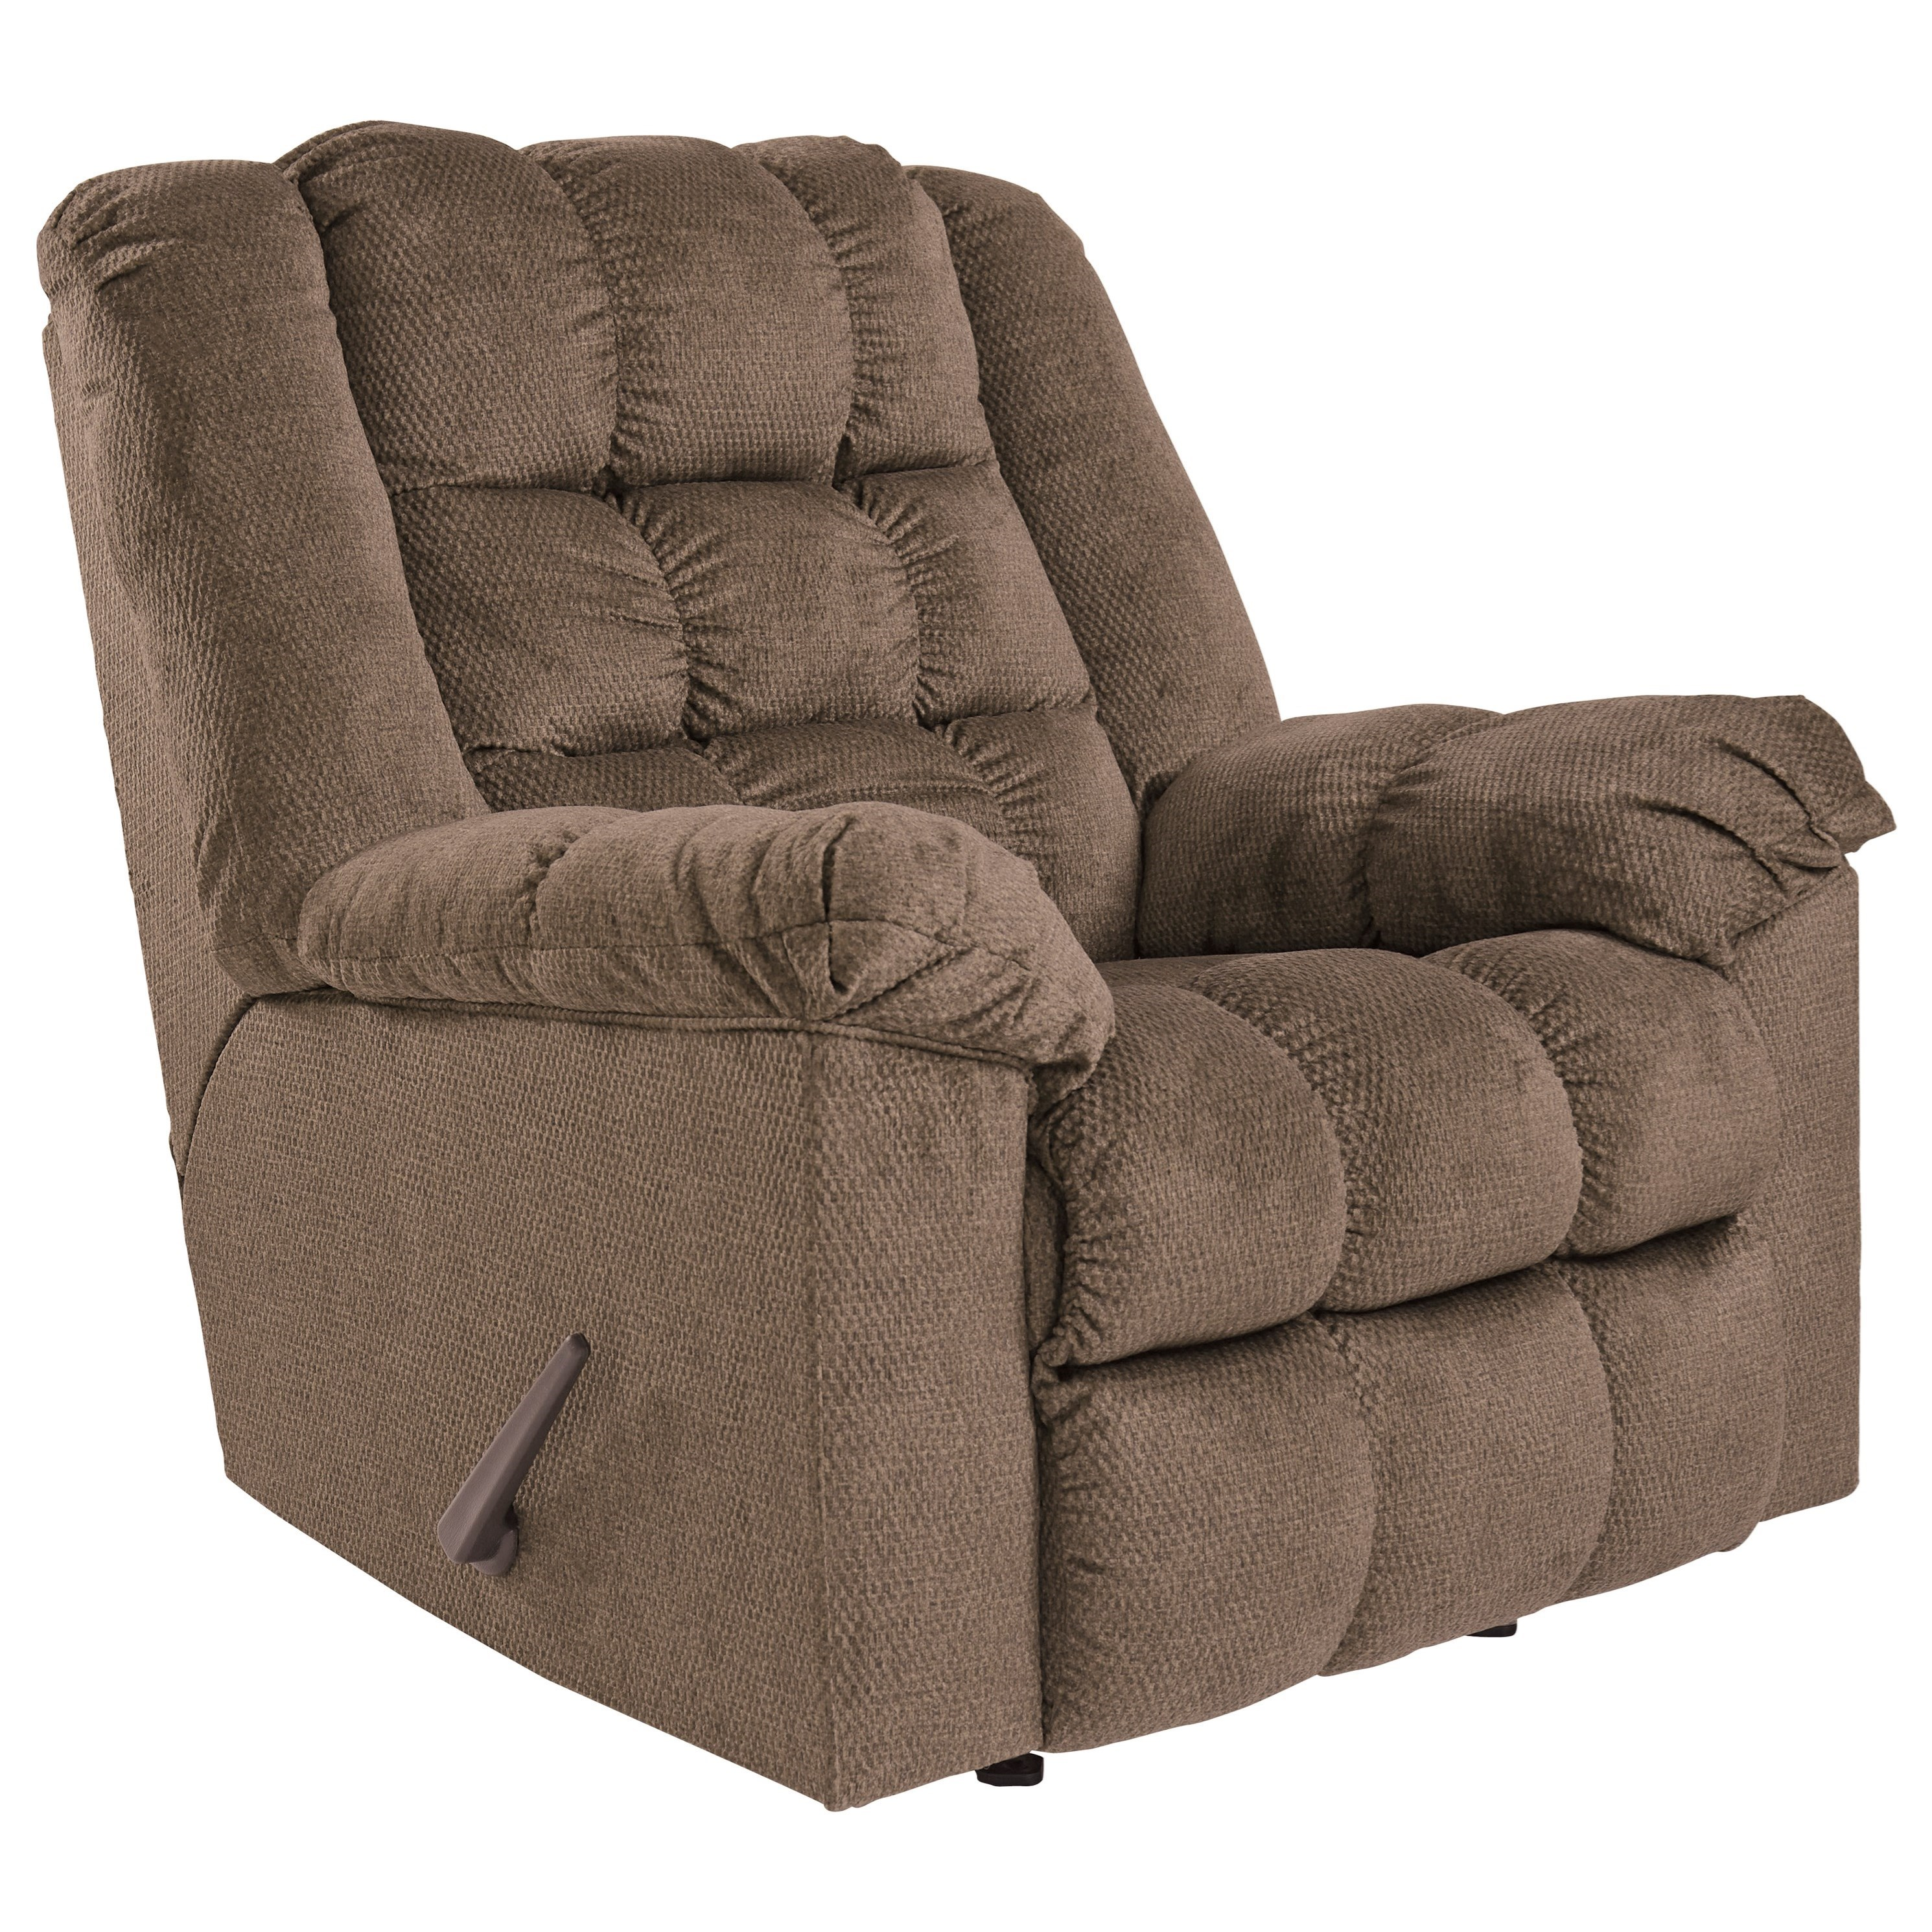 Drakestone Rocker Recliner by Signature Design by Ashley at Beck's Furniture